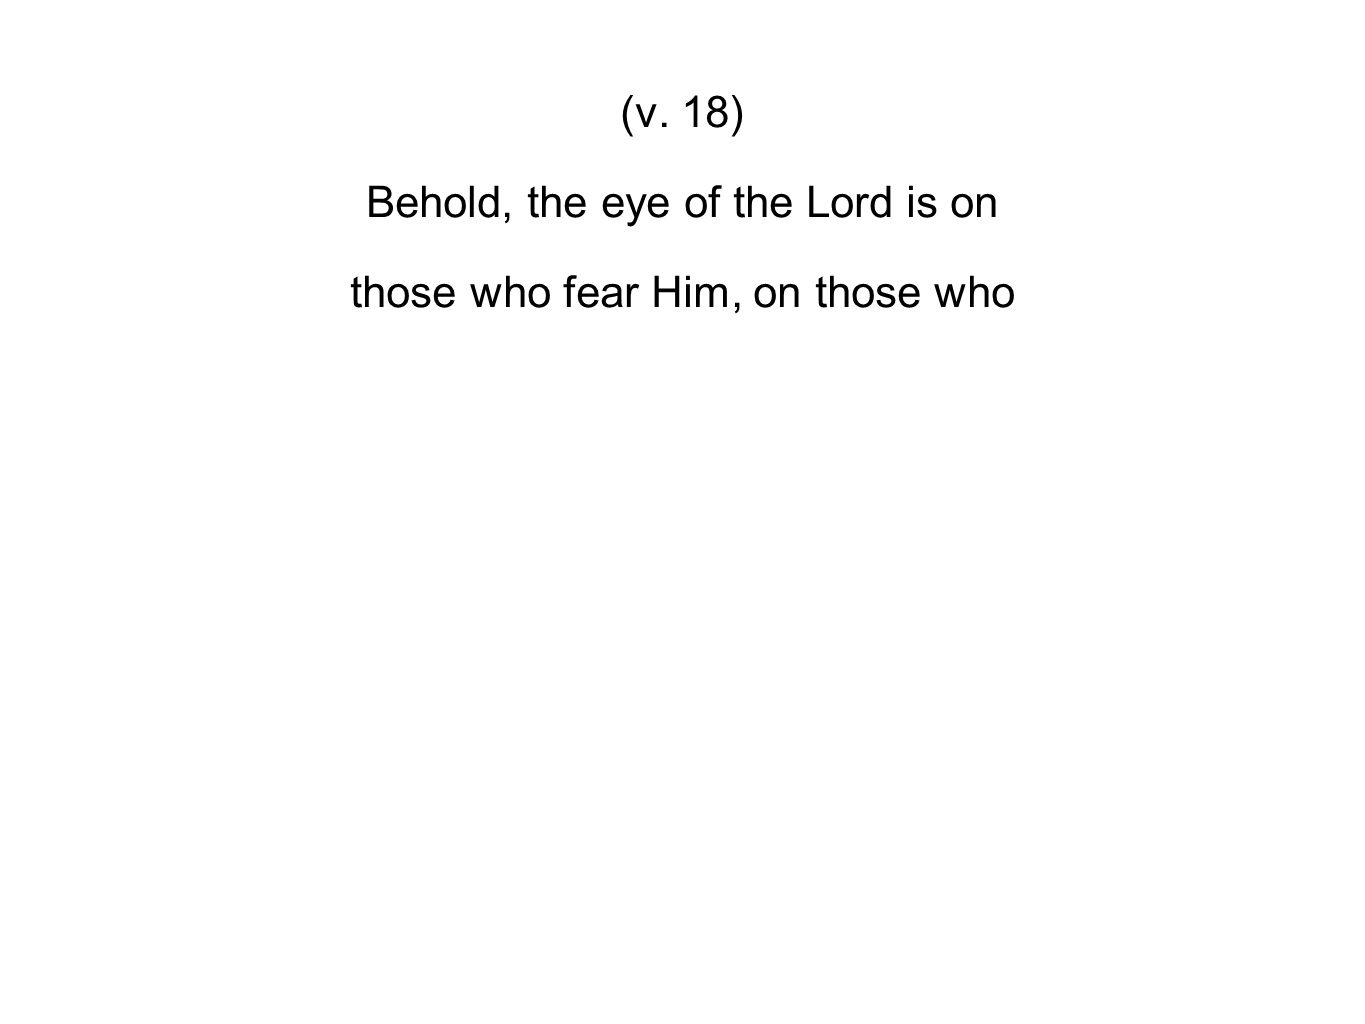 (v. 18) Behold, the eye of the Lord is on those who fear Him, on those who